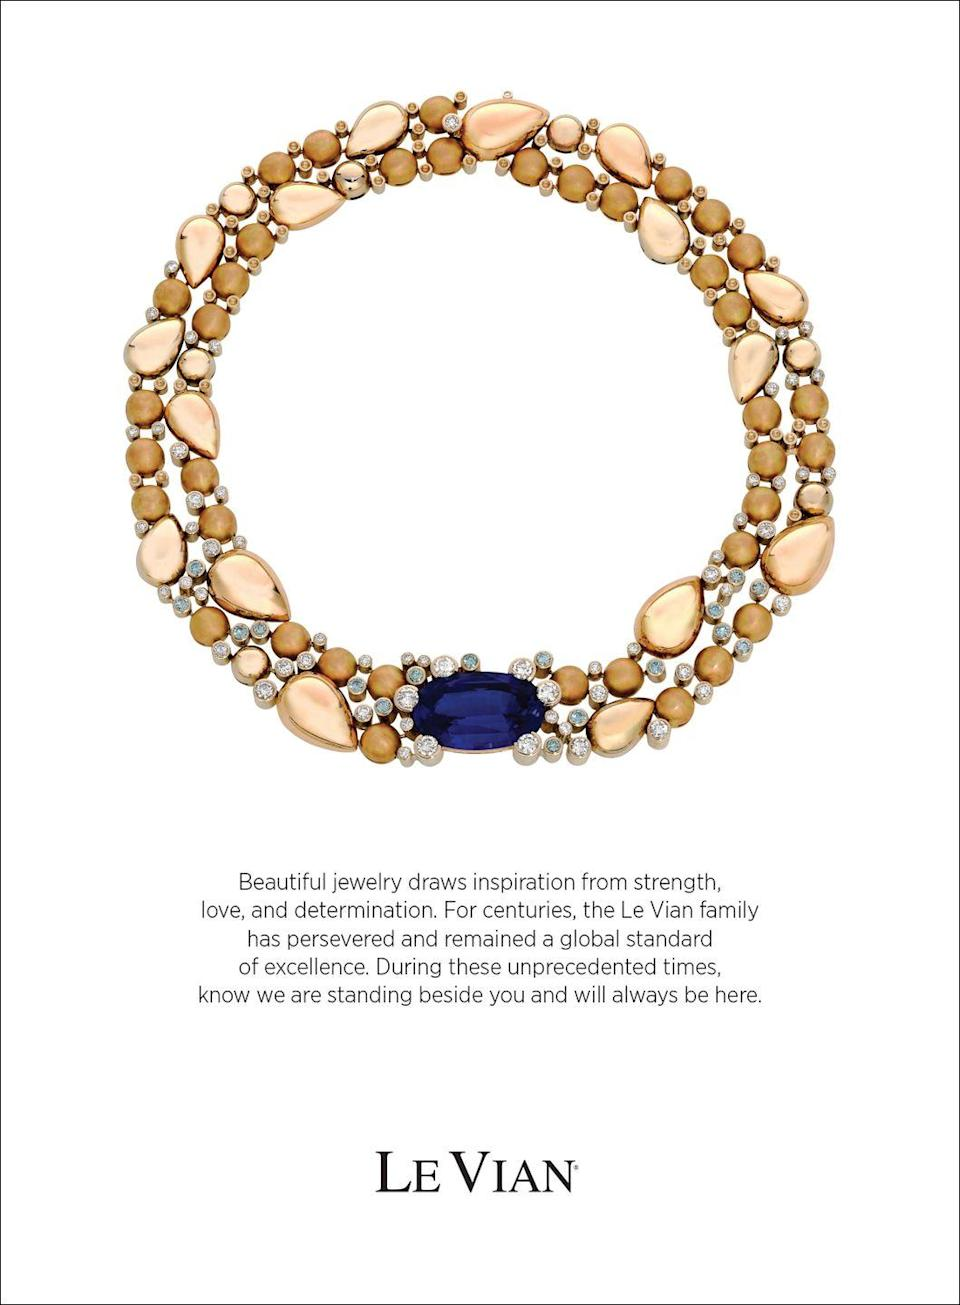 <p>Beautiful jewelry draws inspiration from strength, love, and determination. For centuries, the Le Vian family has persevered and remained a global standard of excellence. During these unprecedented times, know we are standing beside you and will always be here.</p>